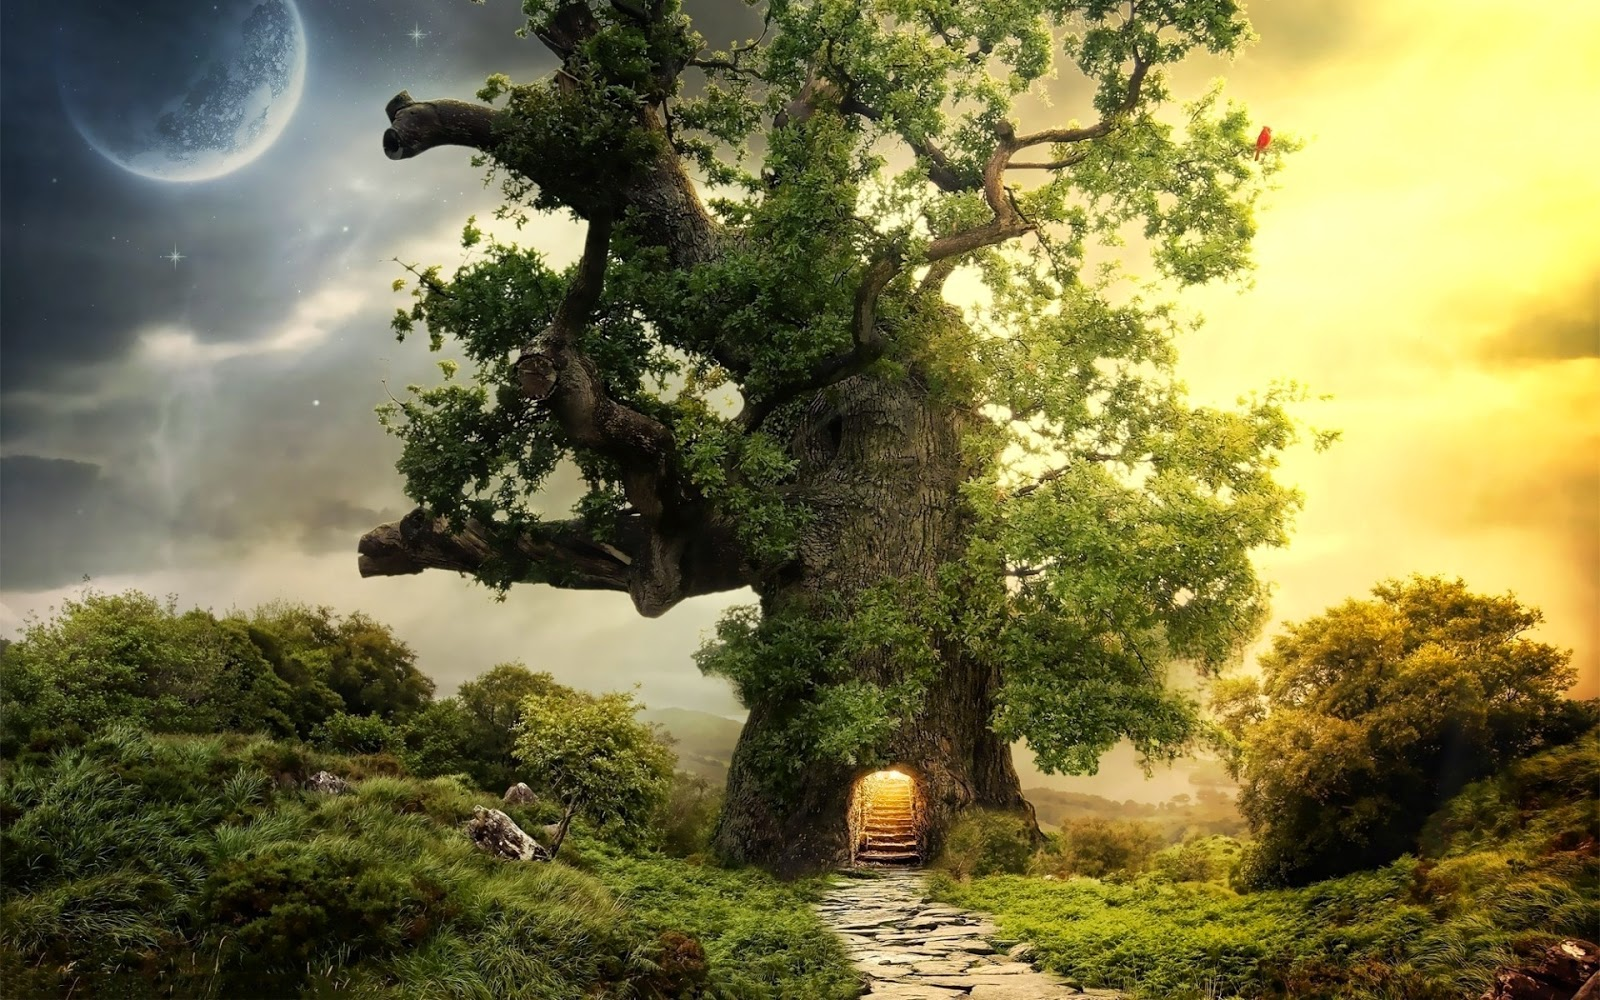 fantasy-house-tree-designs-real-world-1920x1200.jpg